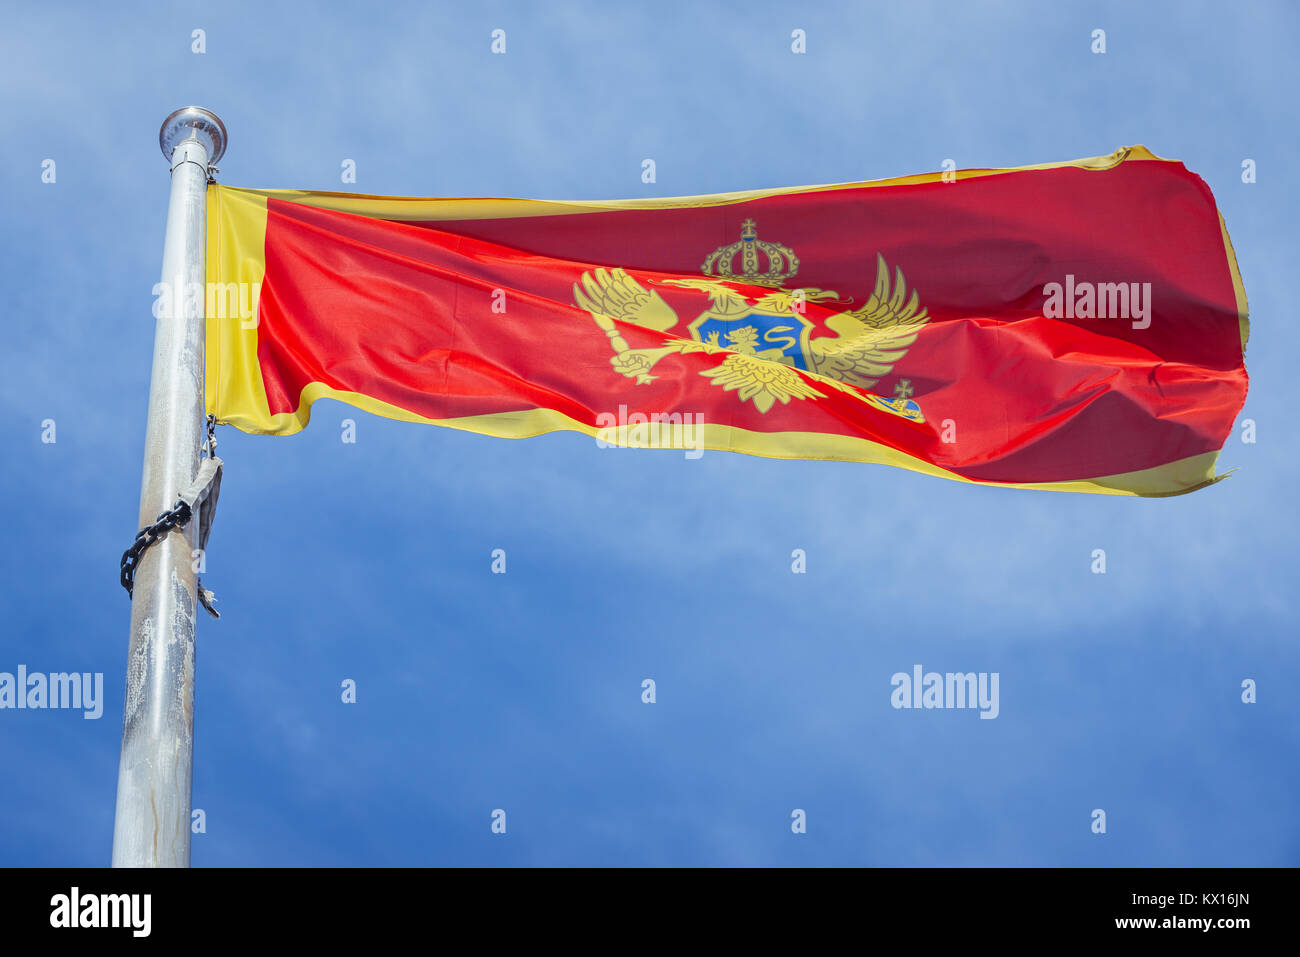 Montenegrin flag in Citadel on the Old Town of Budva city on the Adriatic Sea coast in Montenegro Stock Photo